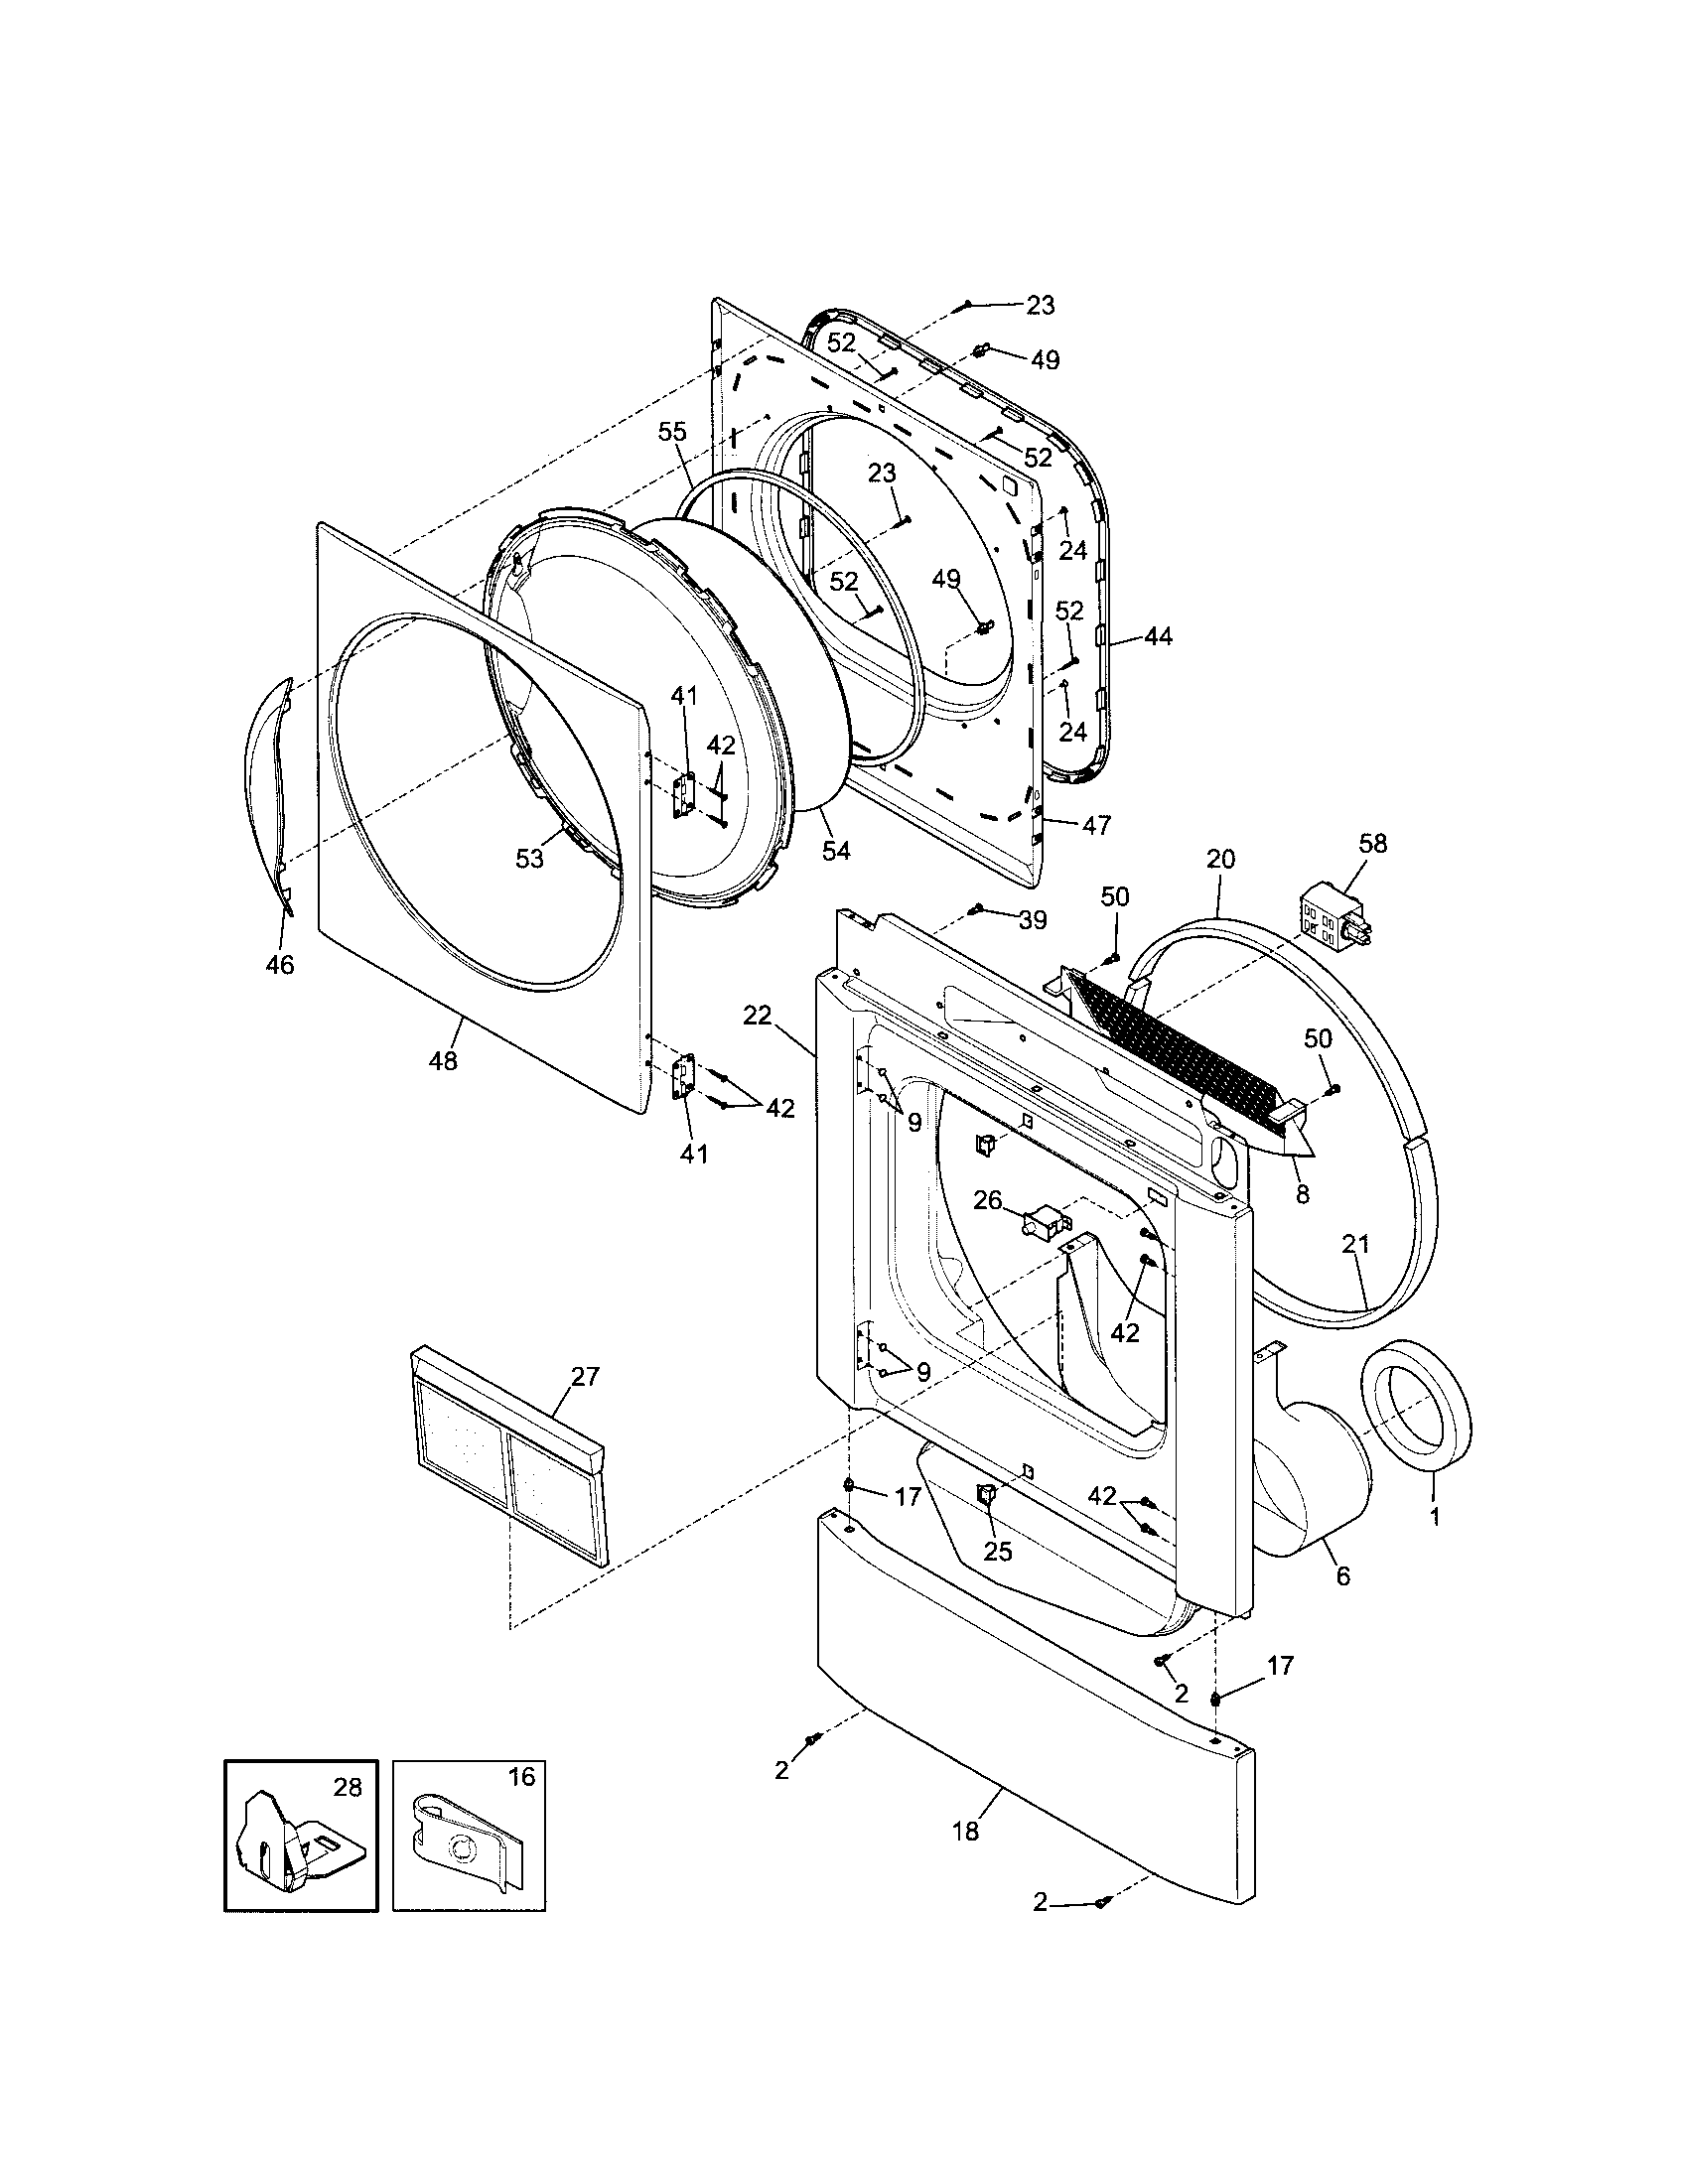 hight resolution of kenmore 41798052700 front panel lint filter diagram